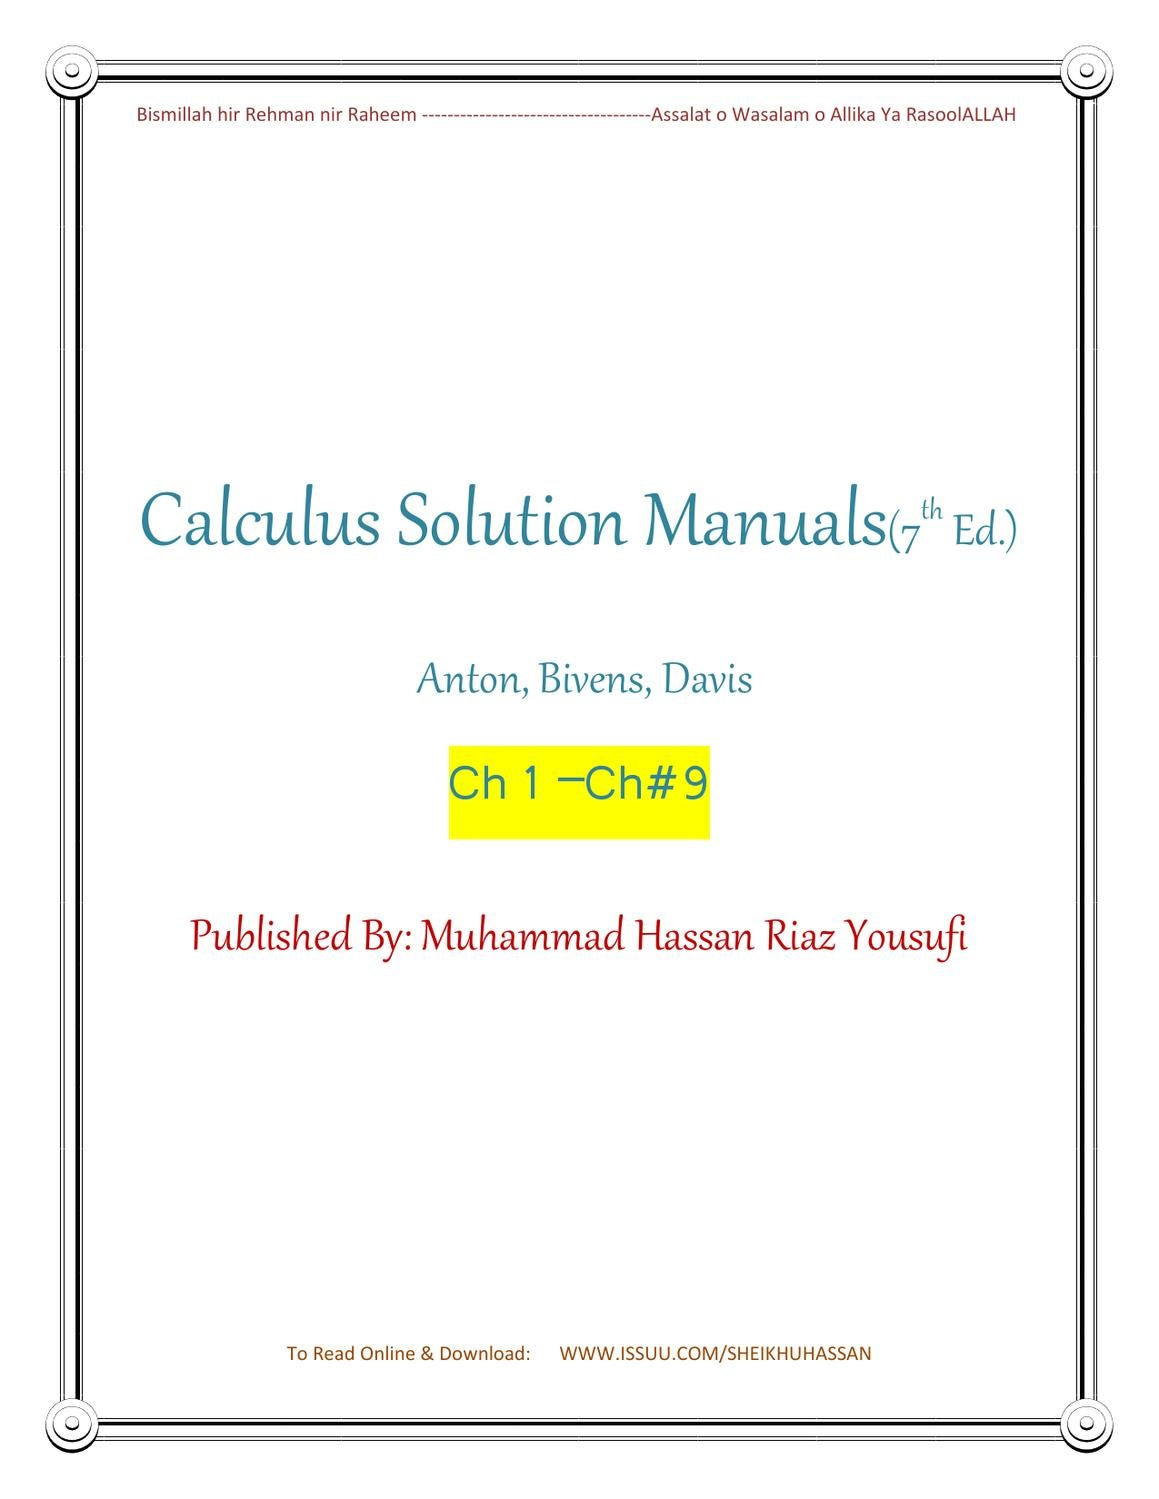 solution calculus by howard anton 7th ed part 1 by ali ahmad issuu rh issuu com calculus 7th edition howard anton solution manual howard anton calculus 7th edition solution manual part 2